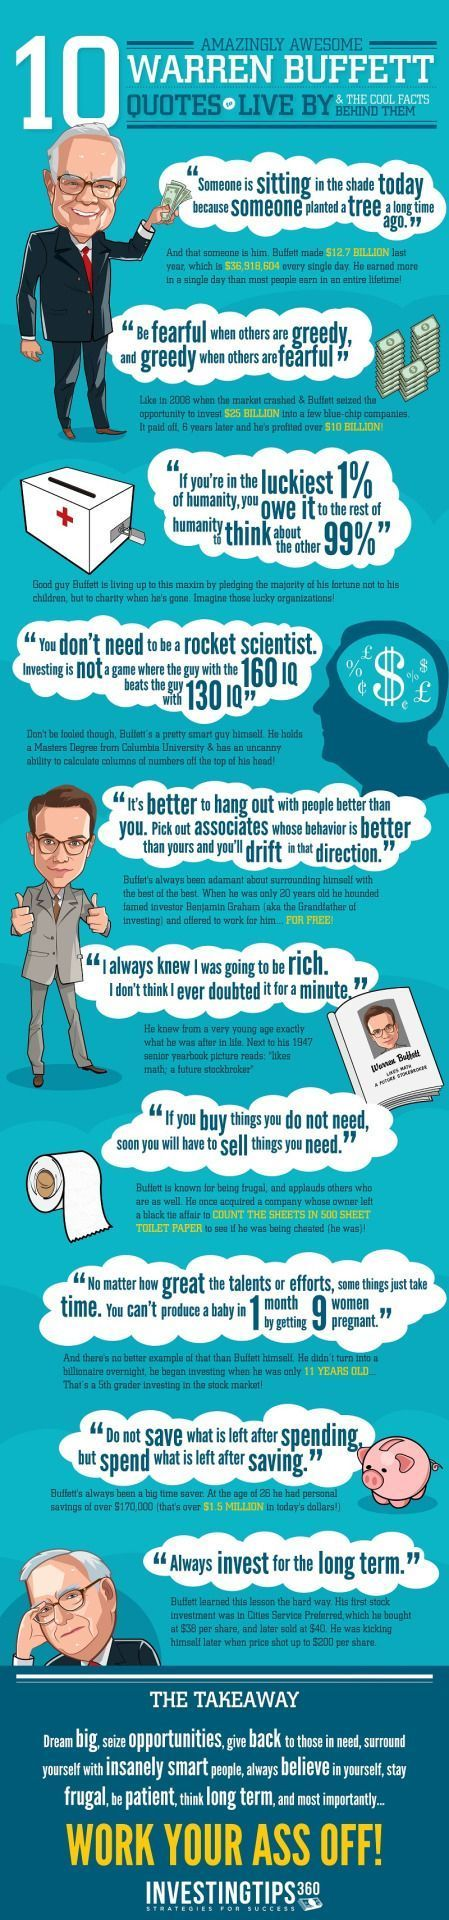 GEM Passive Income News : Photo Warren Buffett Quotes – Wisdom From a Billionaire Informative infographic produced by Investingtips360, the comment below is done by Shelby Nousain; If there's one person you'll want to take investing or financial advice from, it's Warren Buffett. He's one of the richest men on the planet, and one of the most successful businessmen of all time. He's got a net worth of about $63 Billion, and when he speaks the world listens.